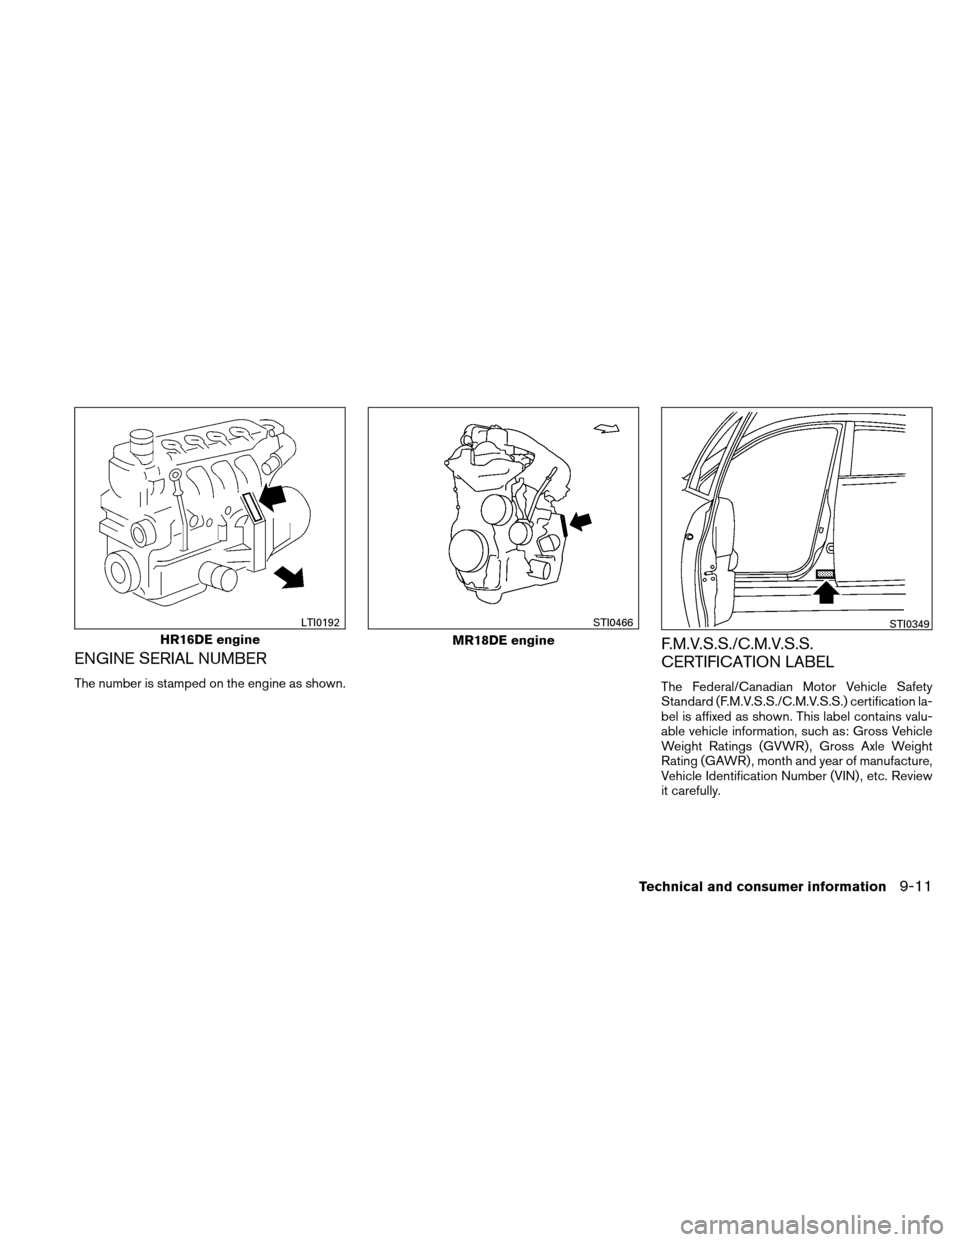 NISSAN VERSA HATCHBACK 2010 1.G Owners Manual, Page 318